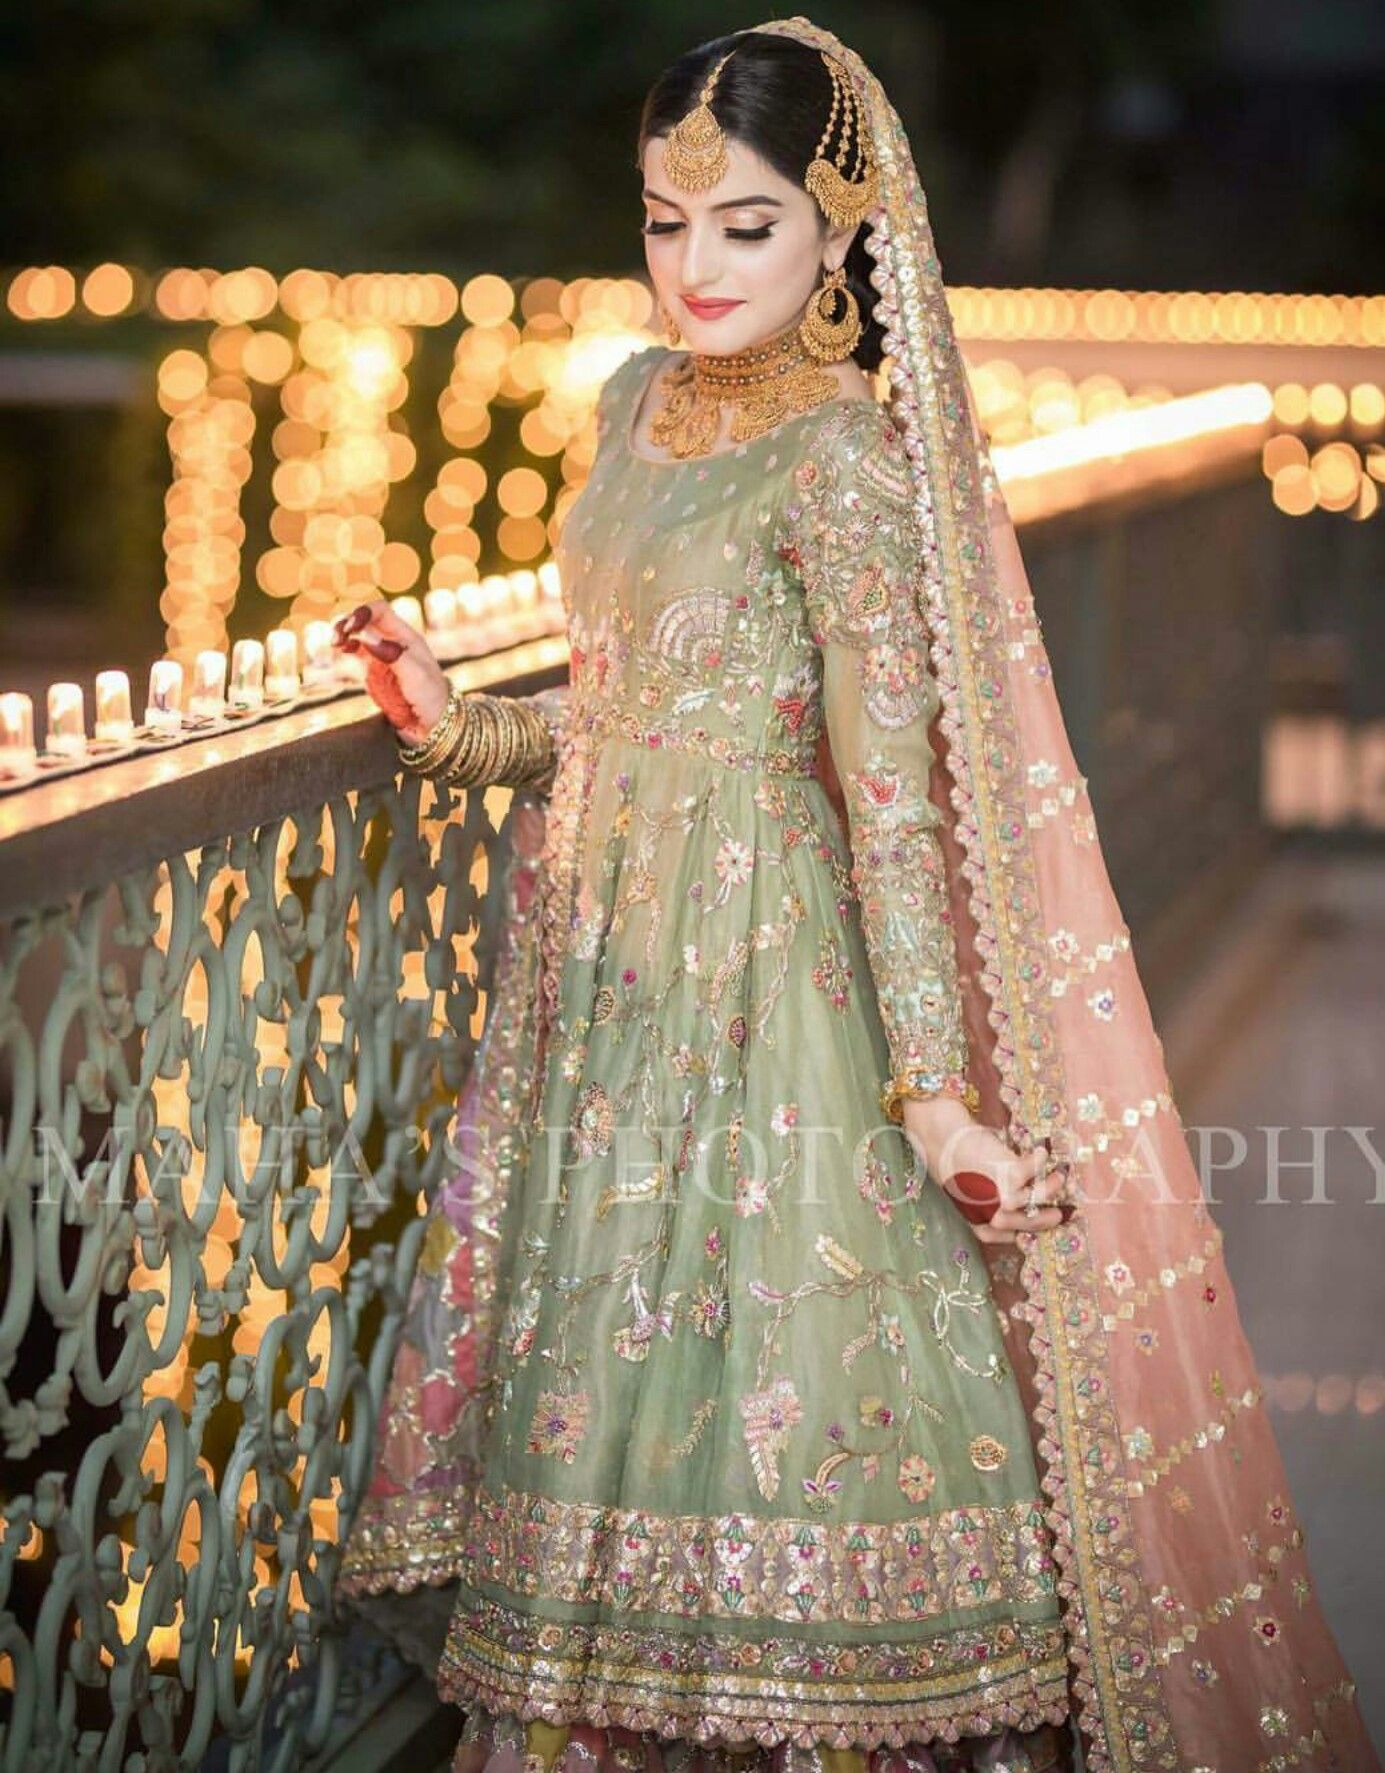 Pin by Ayesha 🐳 on DESI DOLL | Pinterest | Bridal dresses, Desi and ...